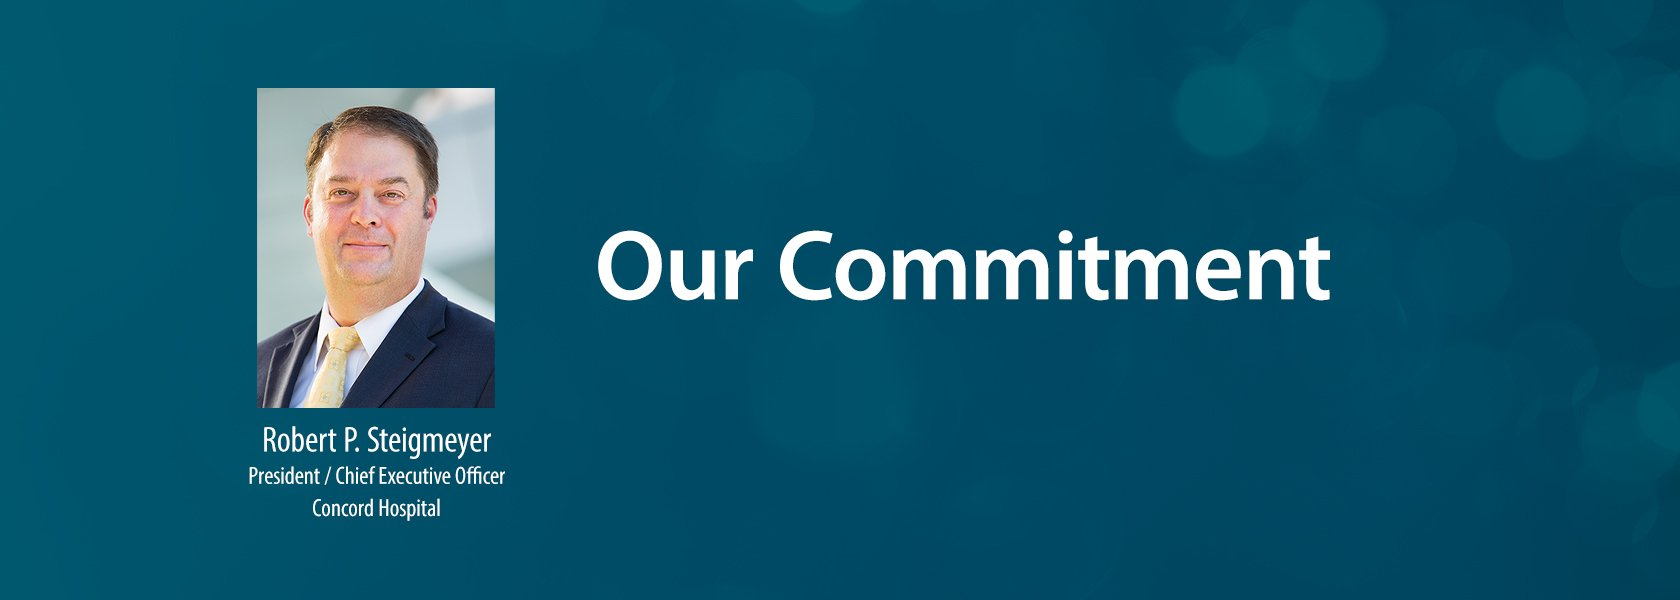 Our Commitment Photo of Robert P. Steigmeyer Presidnet/CEO Concord Hospital